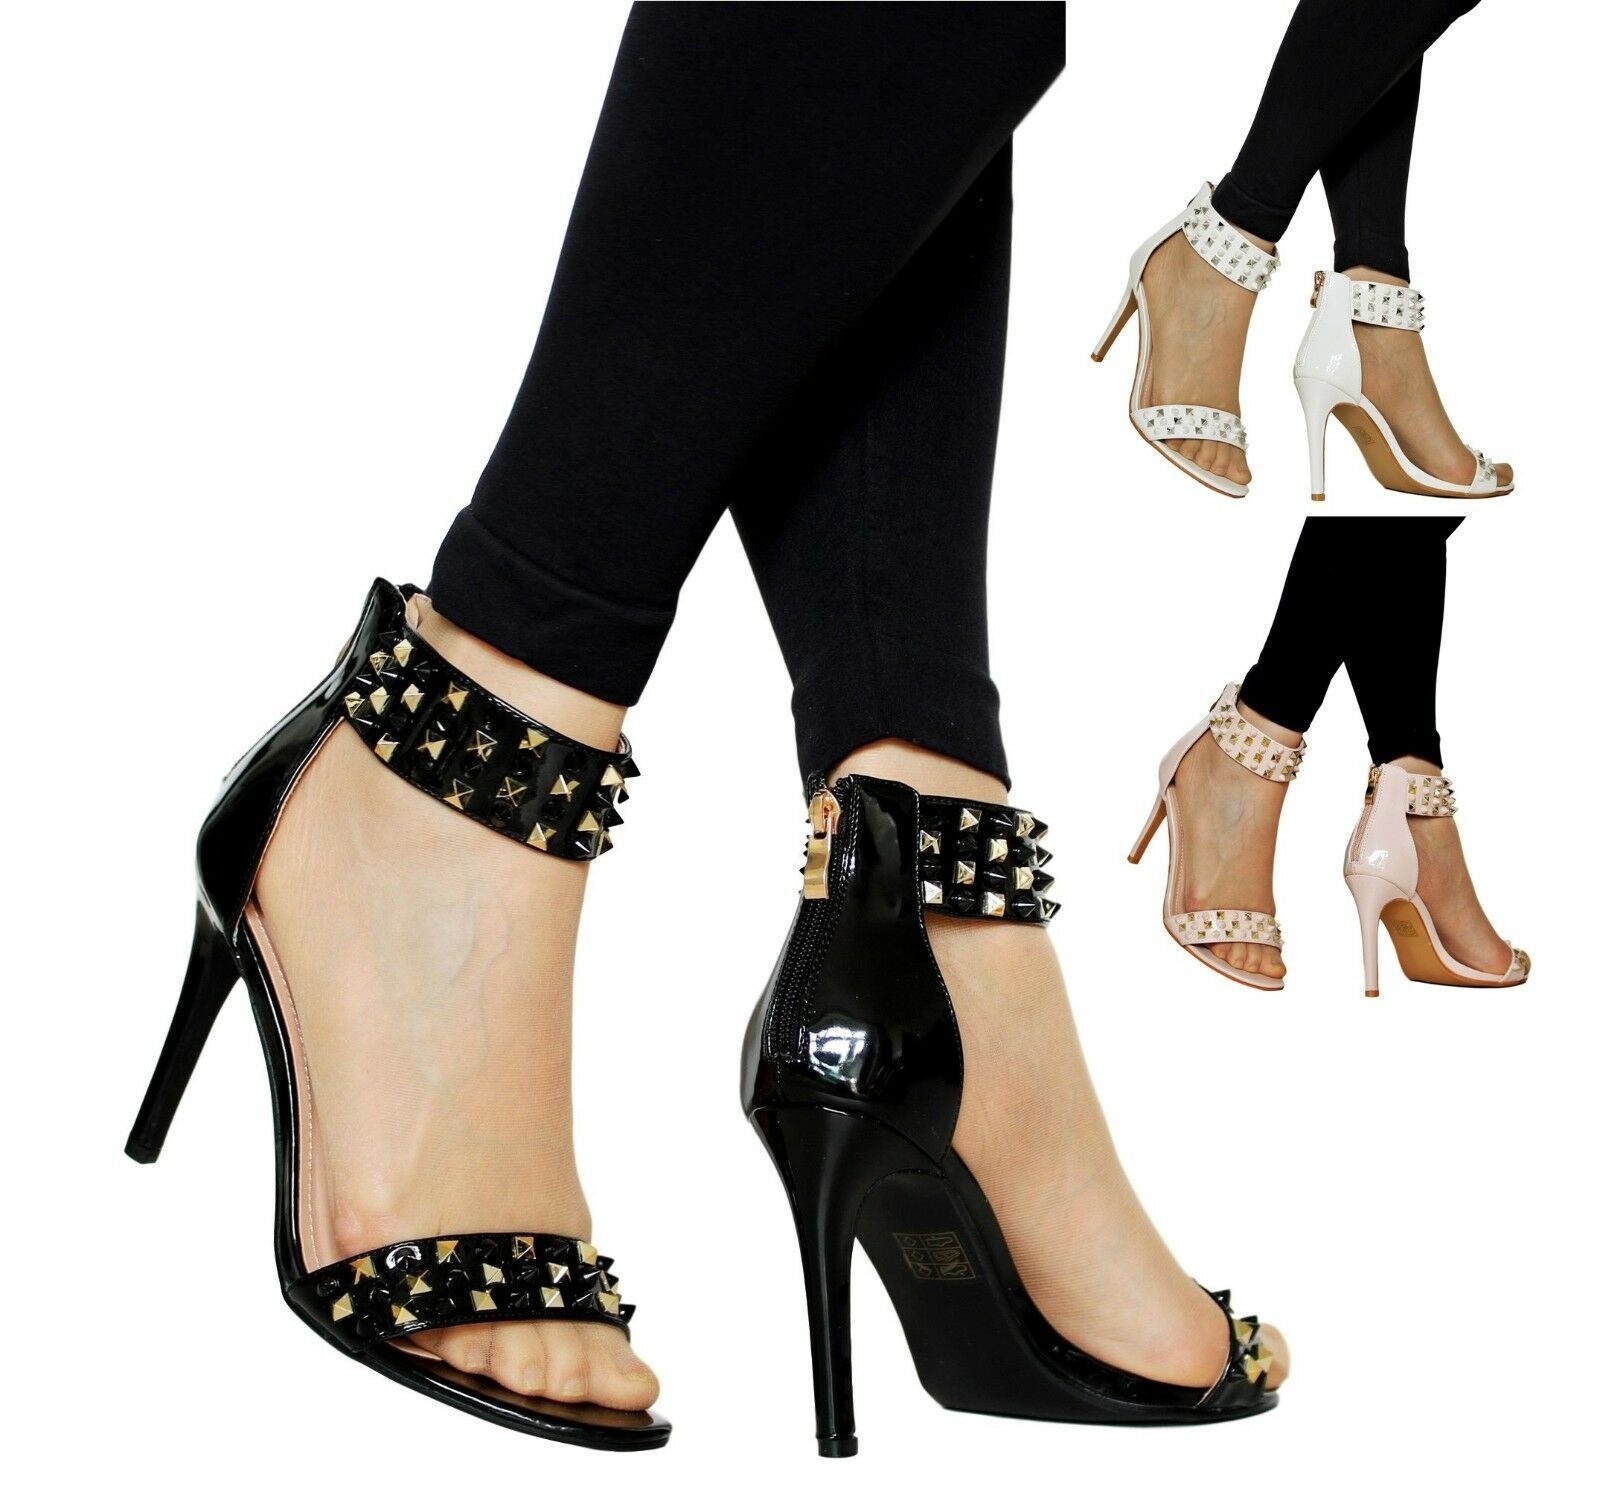 WOMENS LADIES SPOT ON CASUAL PARTY HEELS PUMPS COURT SHOES F9677